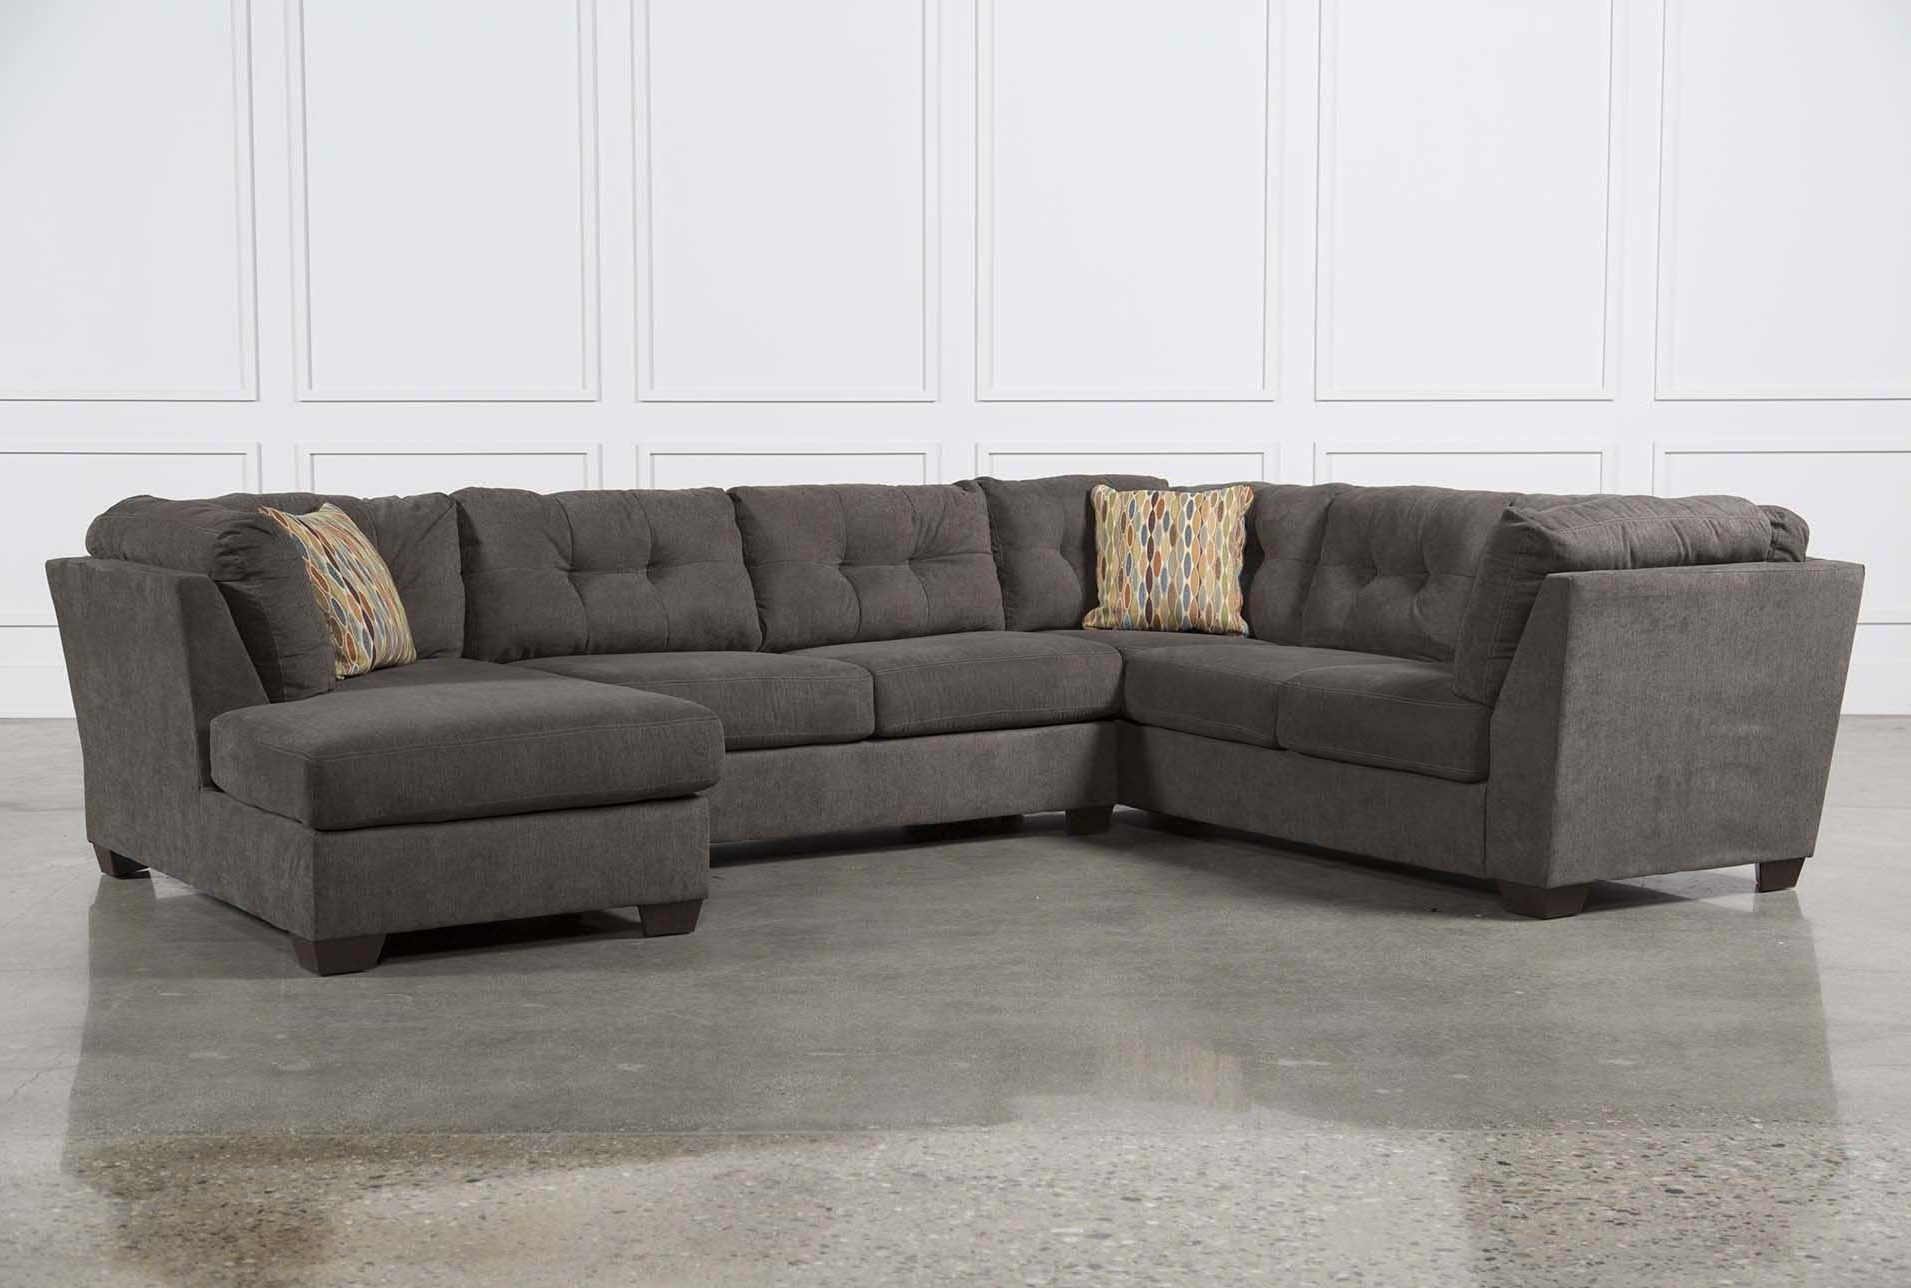 Latest 19 Grey 3 Piece Sectional Sofa – Buildsimplehome In Haven 3 Piece Sectionals (View 11 of 20)